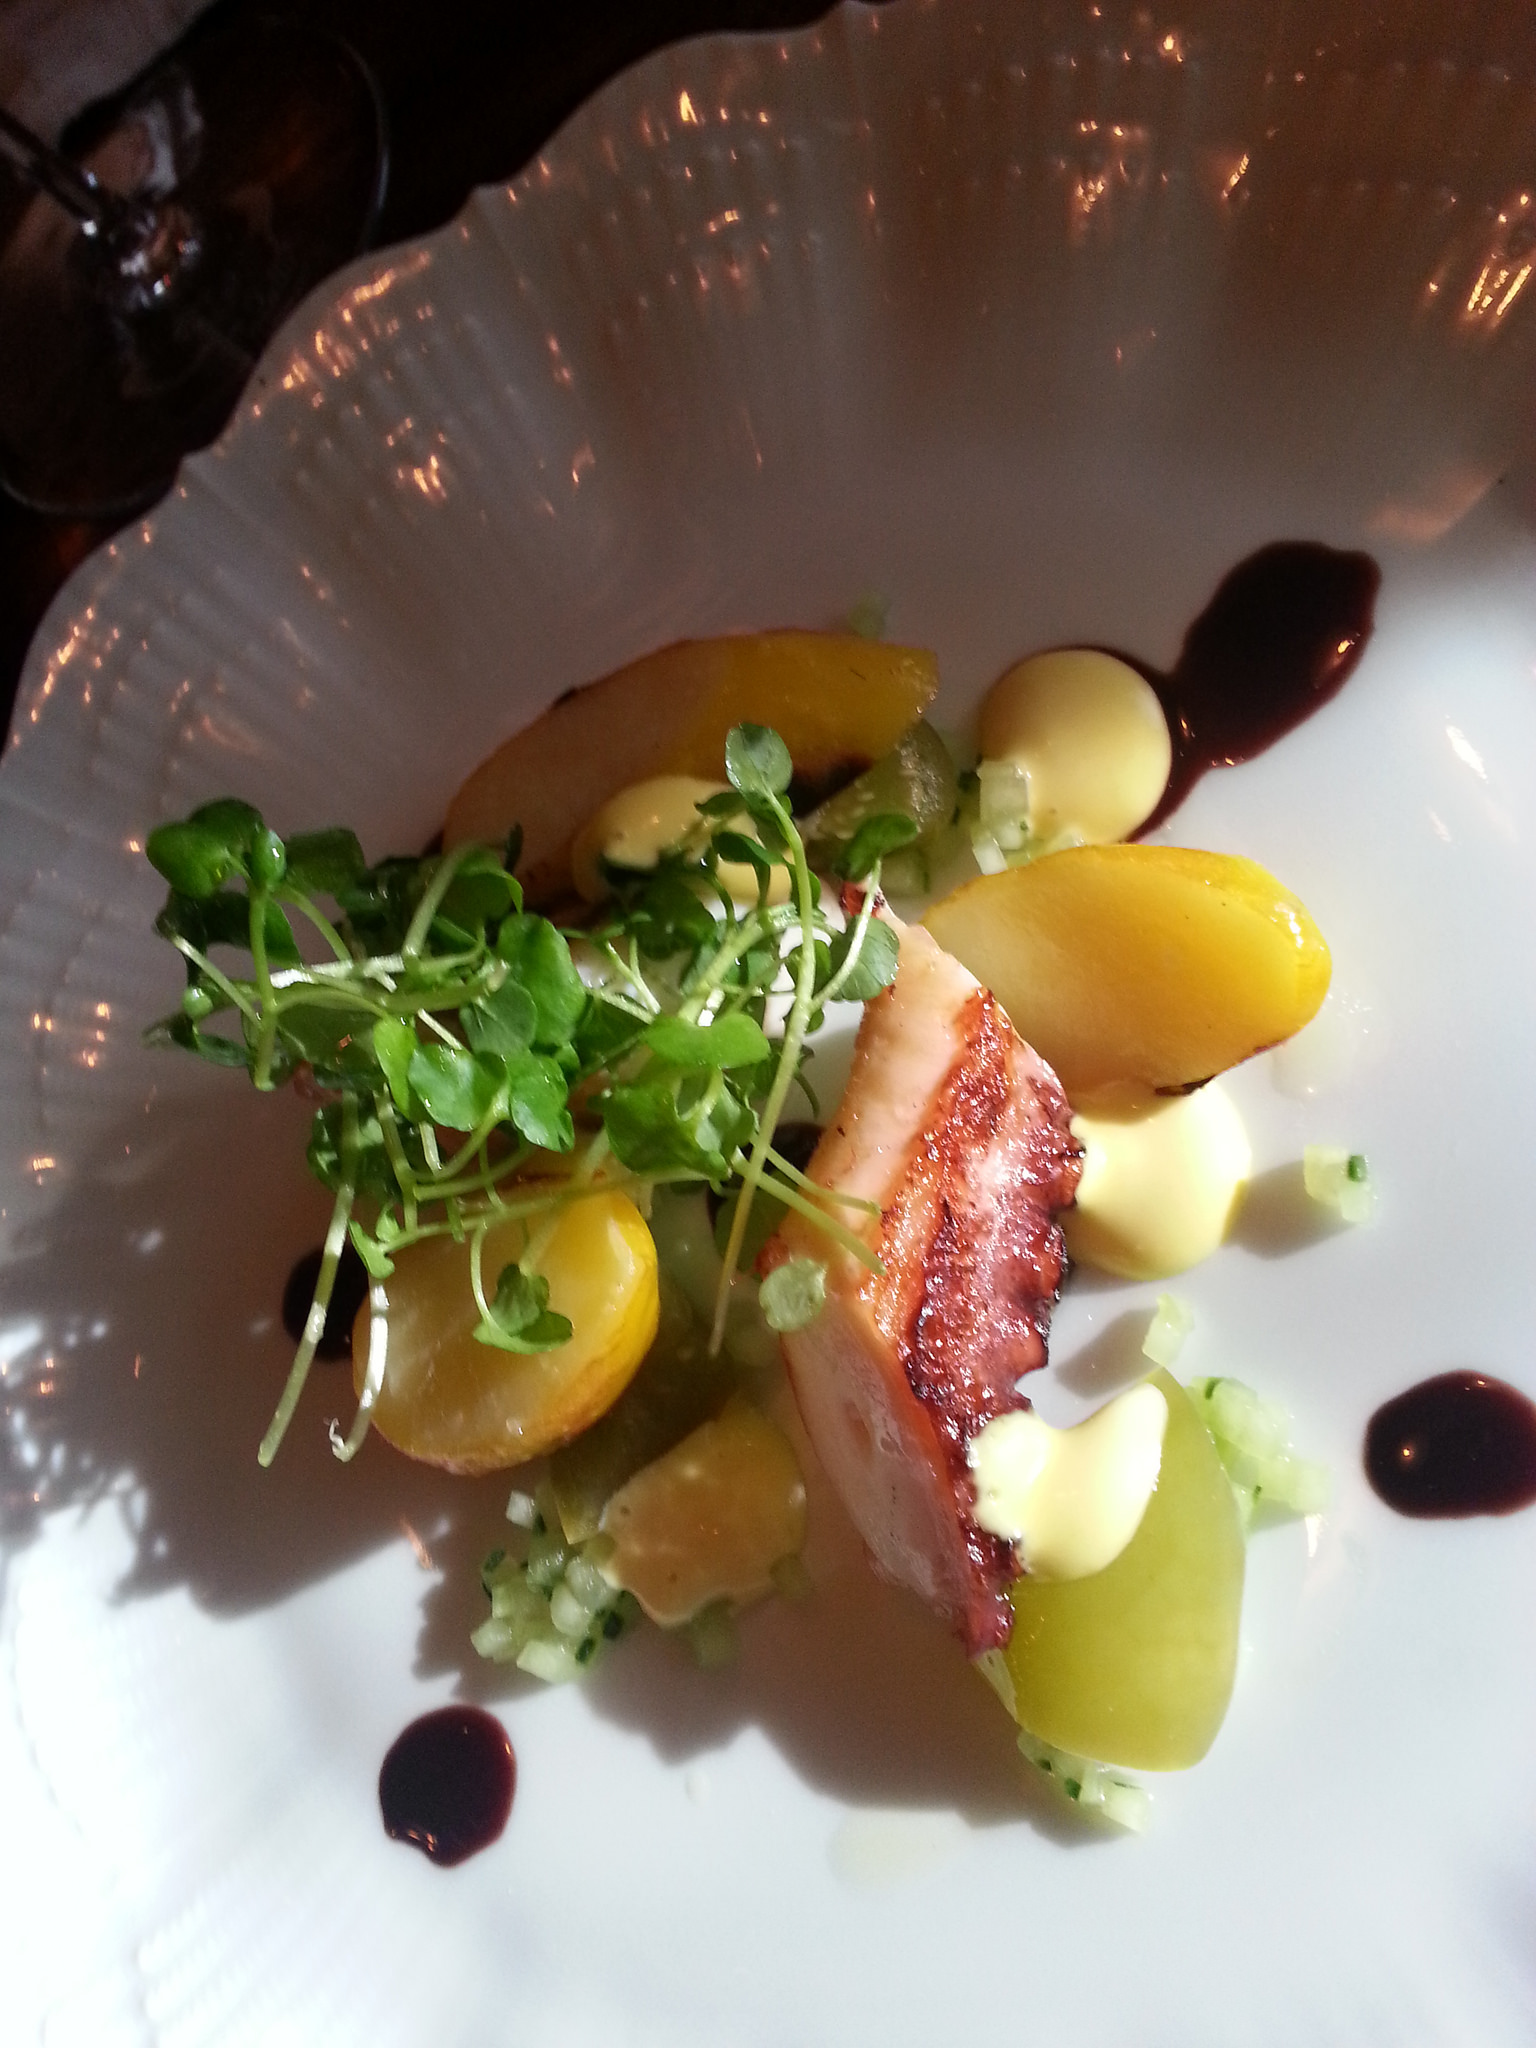 BBQ Octopus with potato, pickled tomatillo, cucumber, and black olive at Maude | FOODABLE WEBTV NETWORK